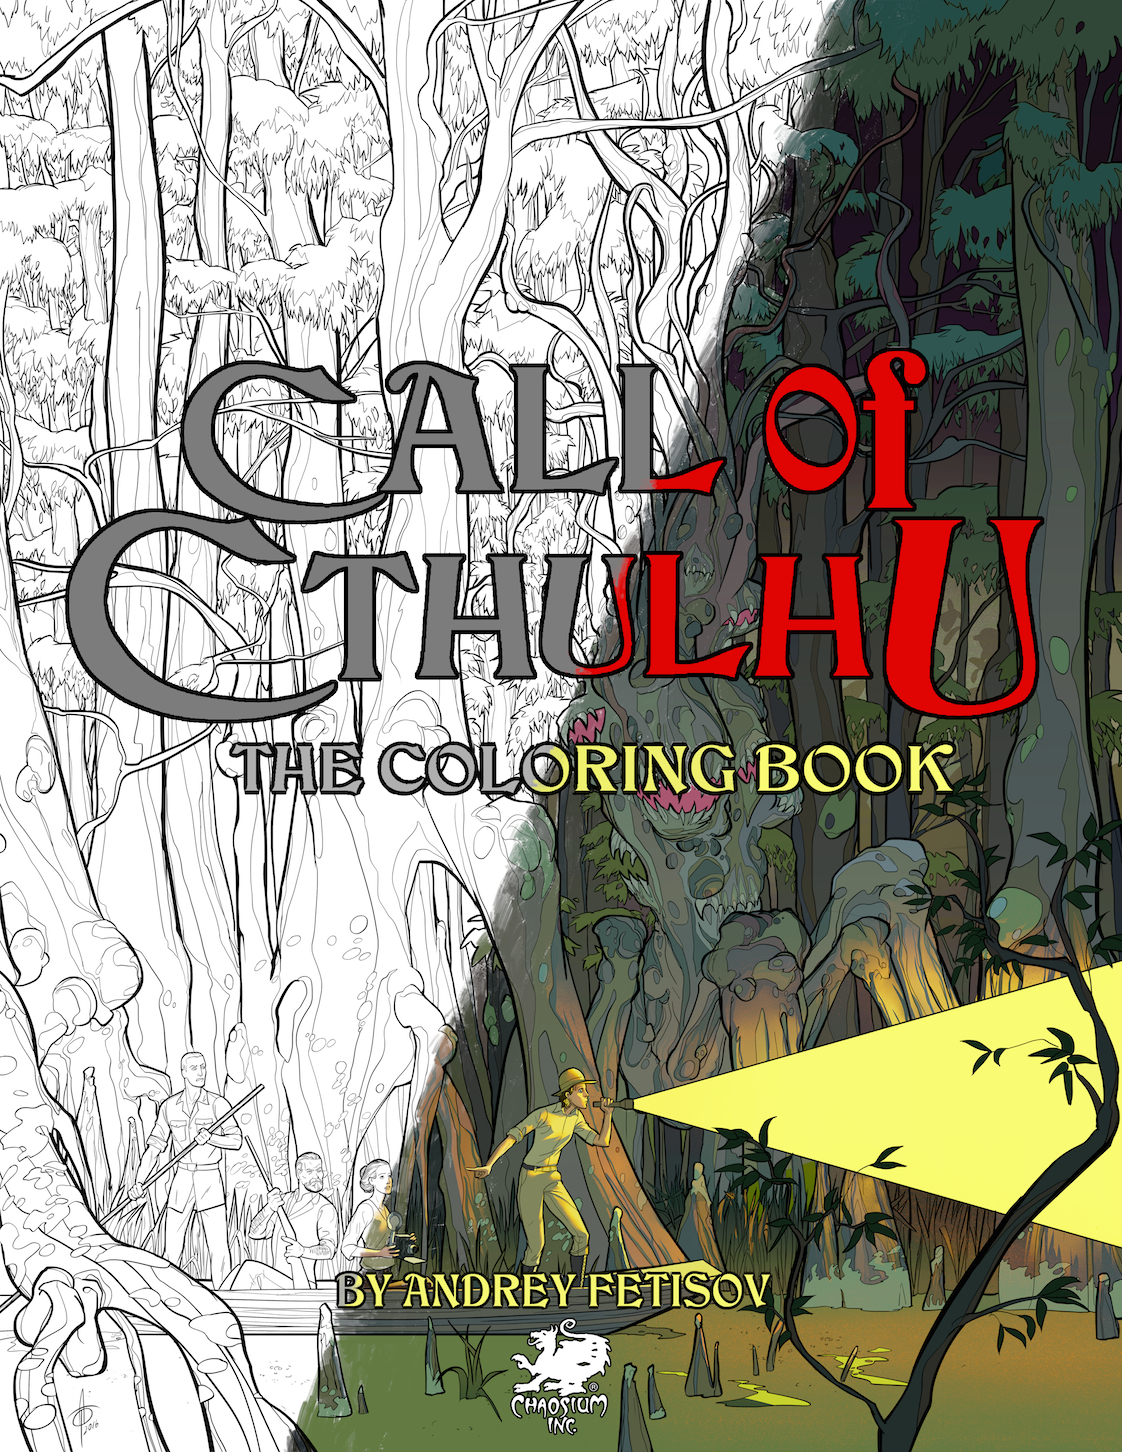 Call Of Cthulhu The Coloring Book Features 28 Eldritch Scenes Lovecraftian Horror For You To Color